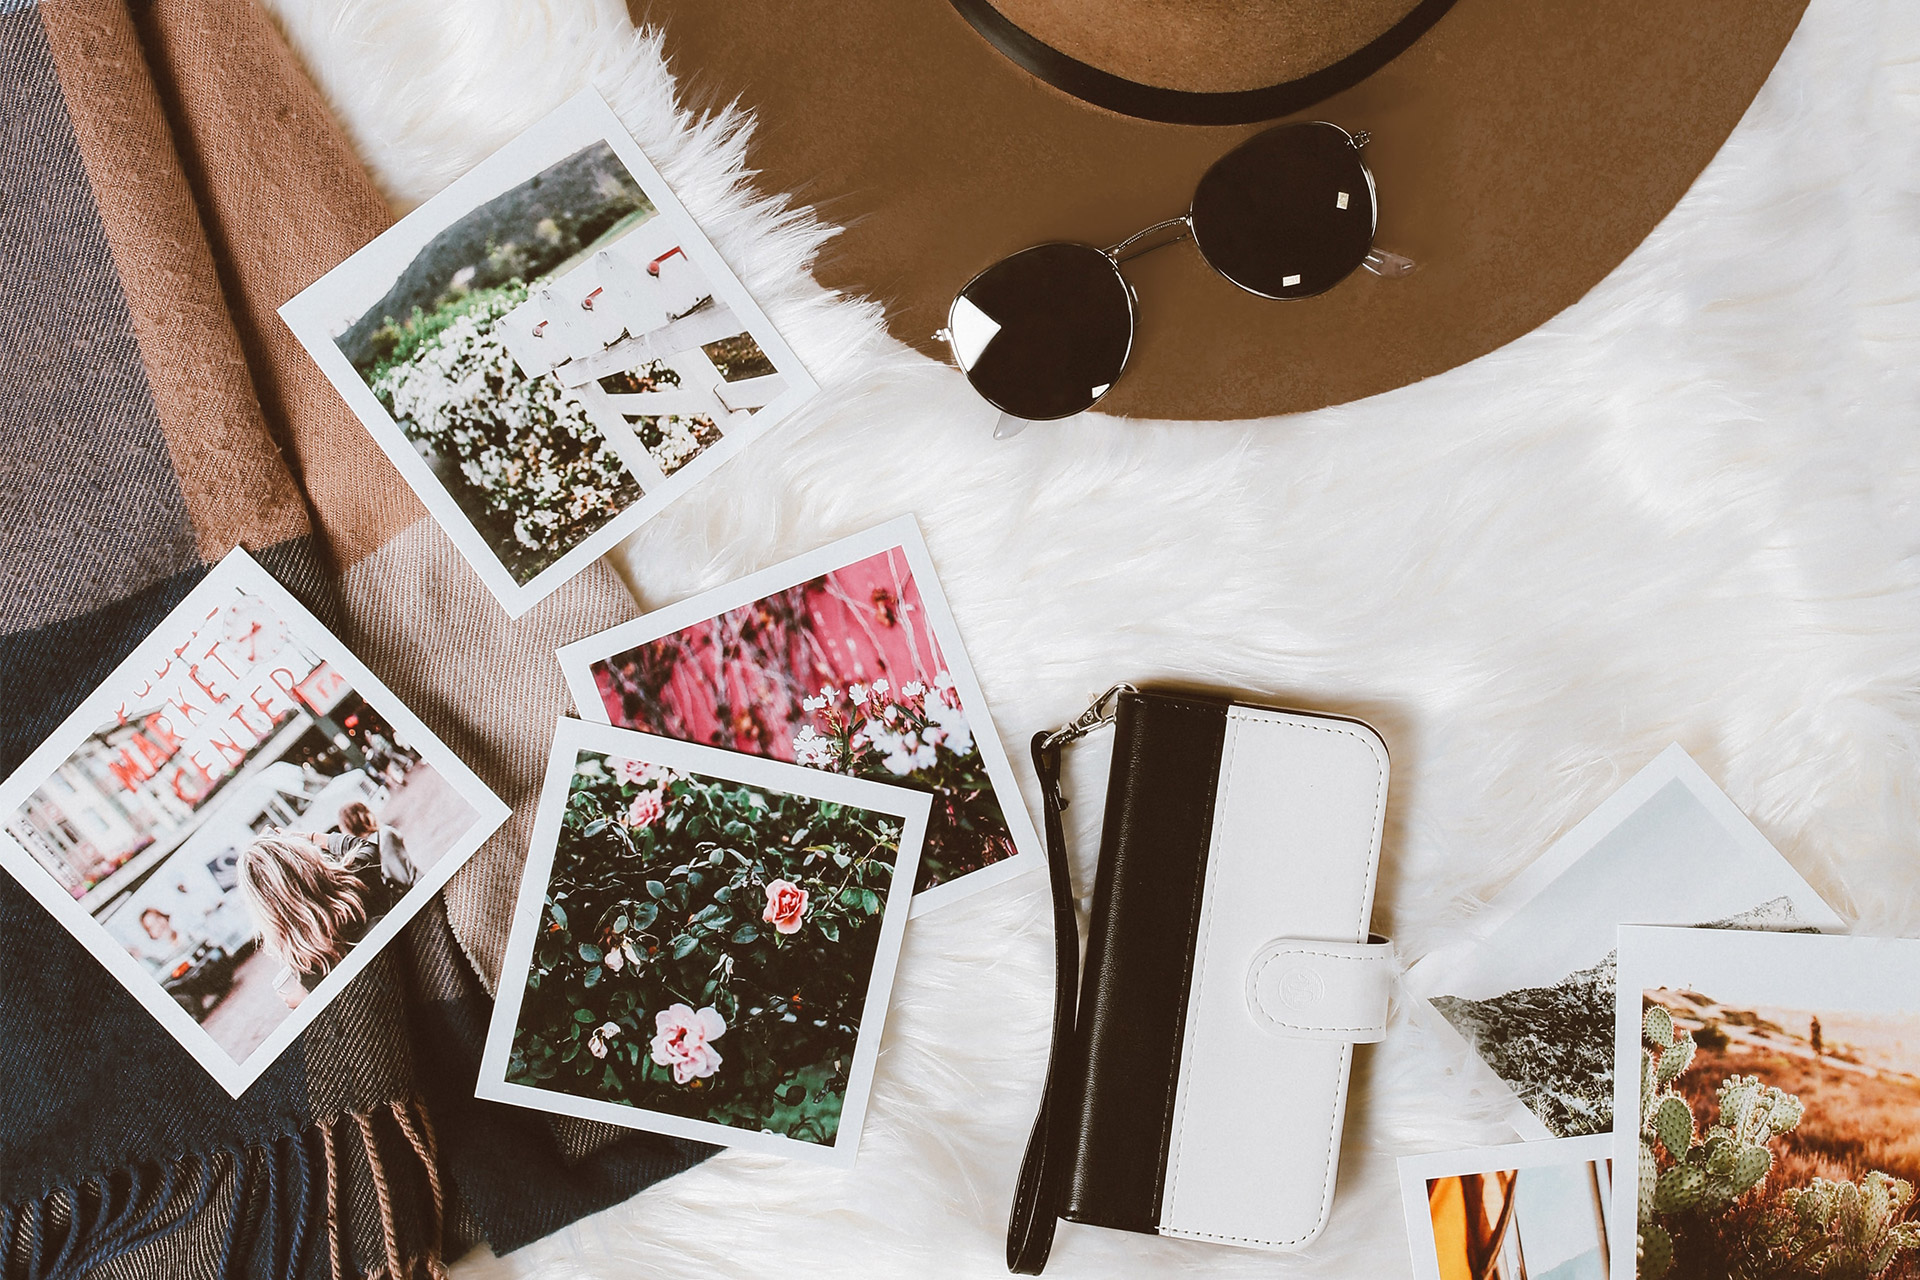 Flat lay on bed with polaroid print outs, hat, sunglasses and cellphone